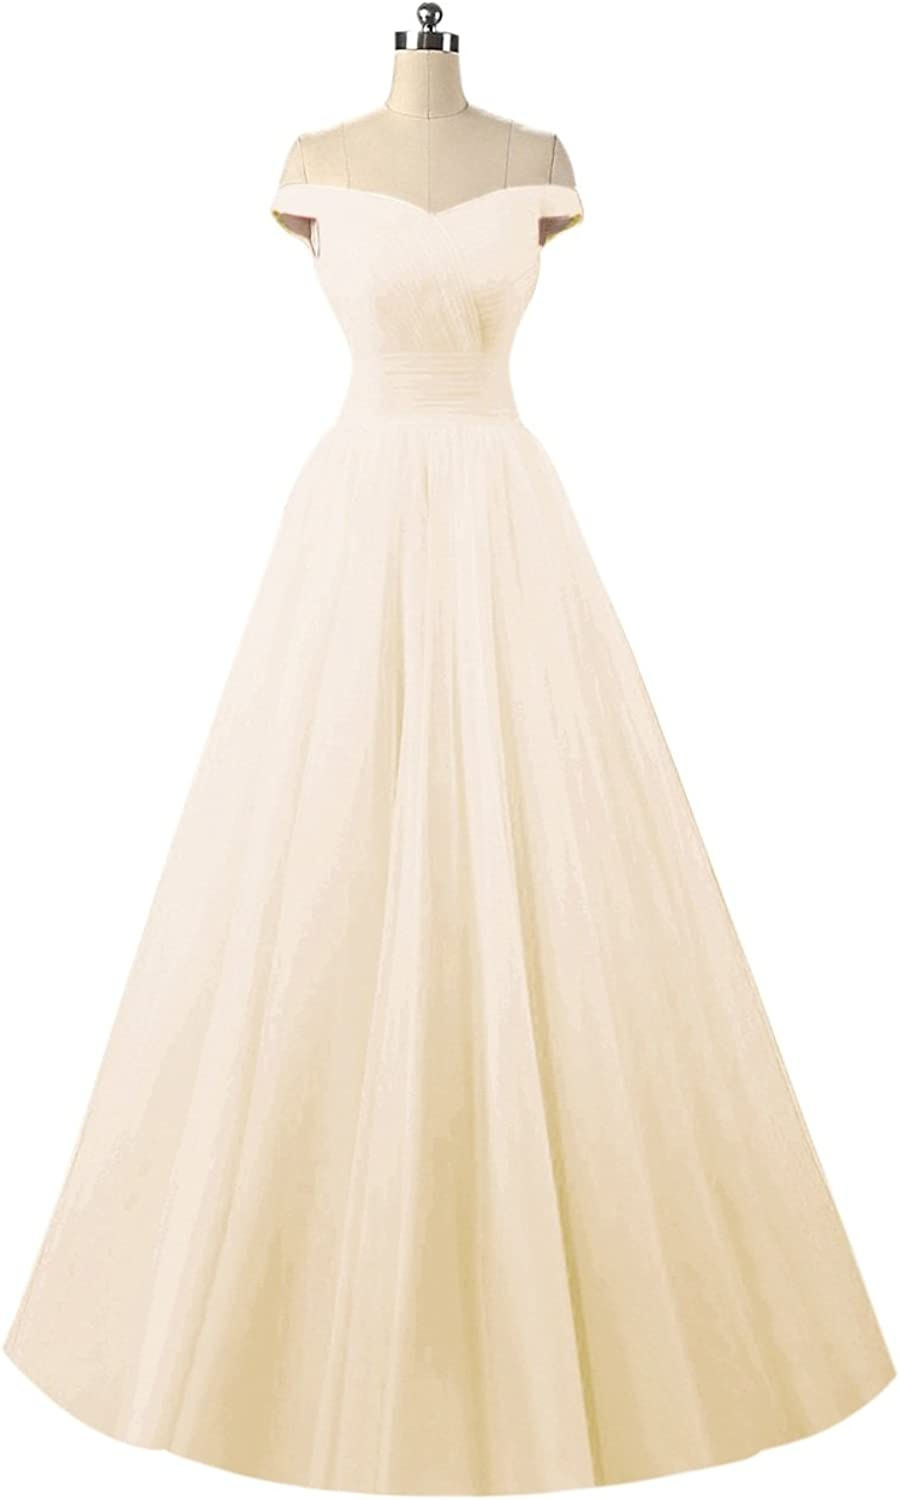 Bess Bridal Women's Off The Shoulder Tulle Lace Up Long Prom Party Dresses